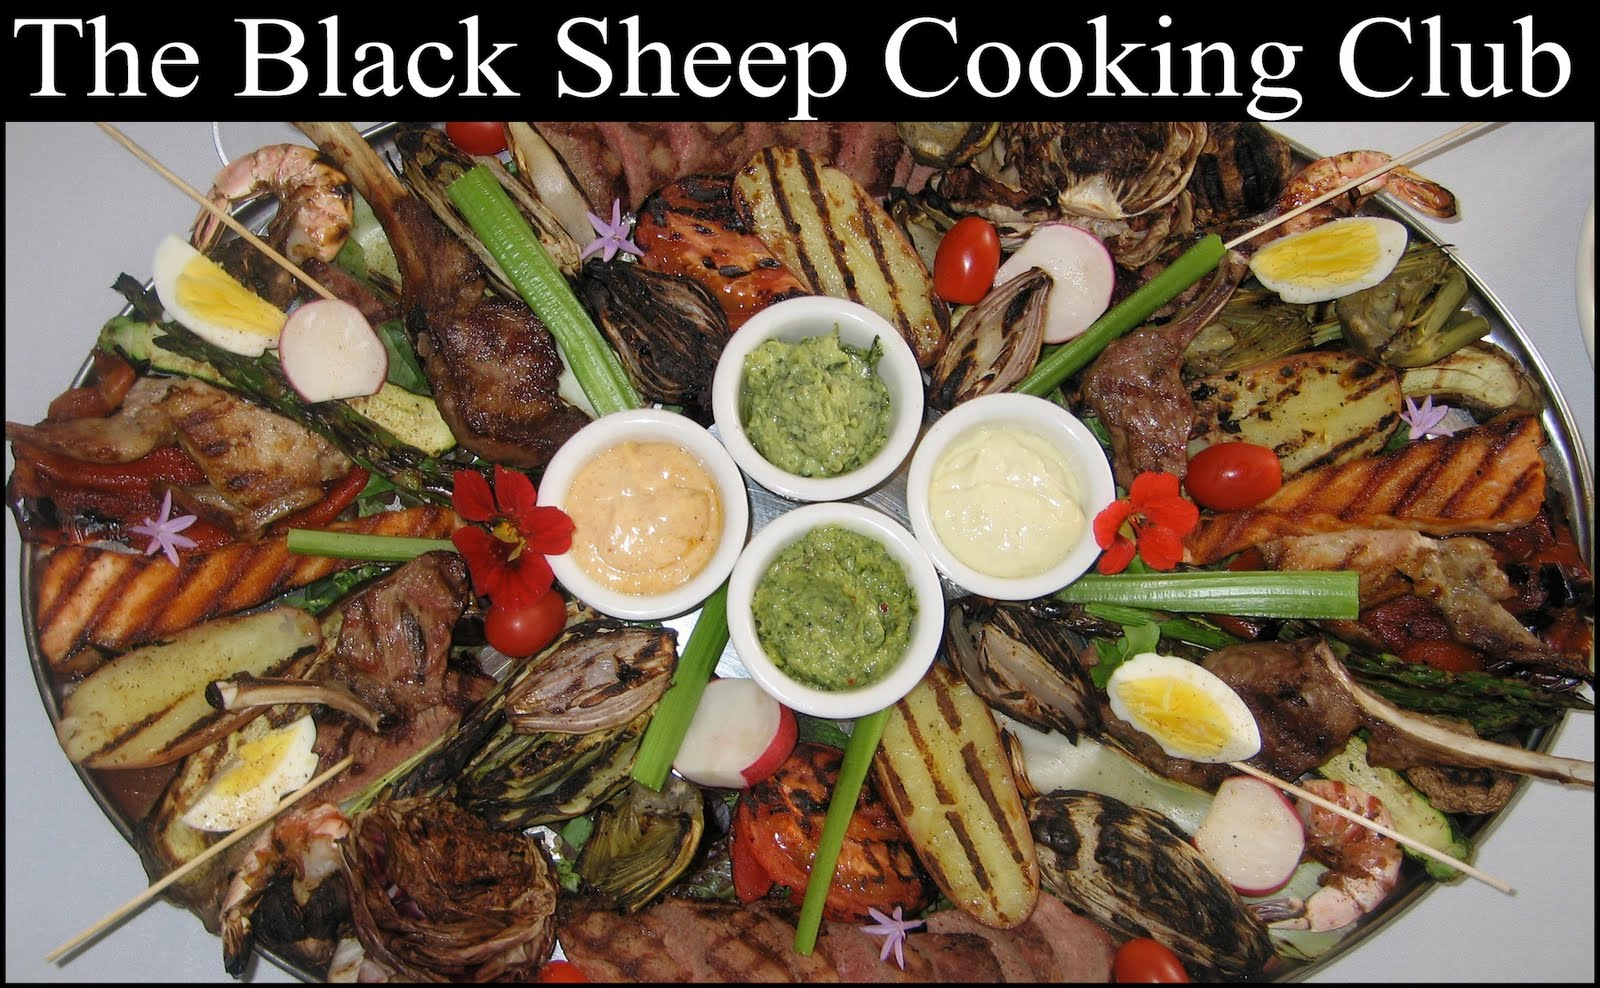 The Black Sheep Cooking Club